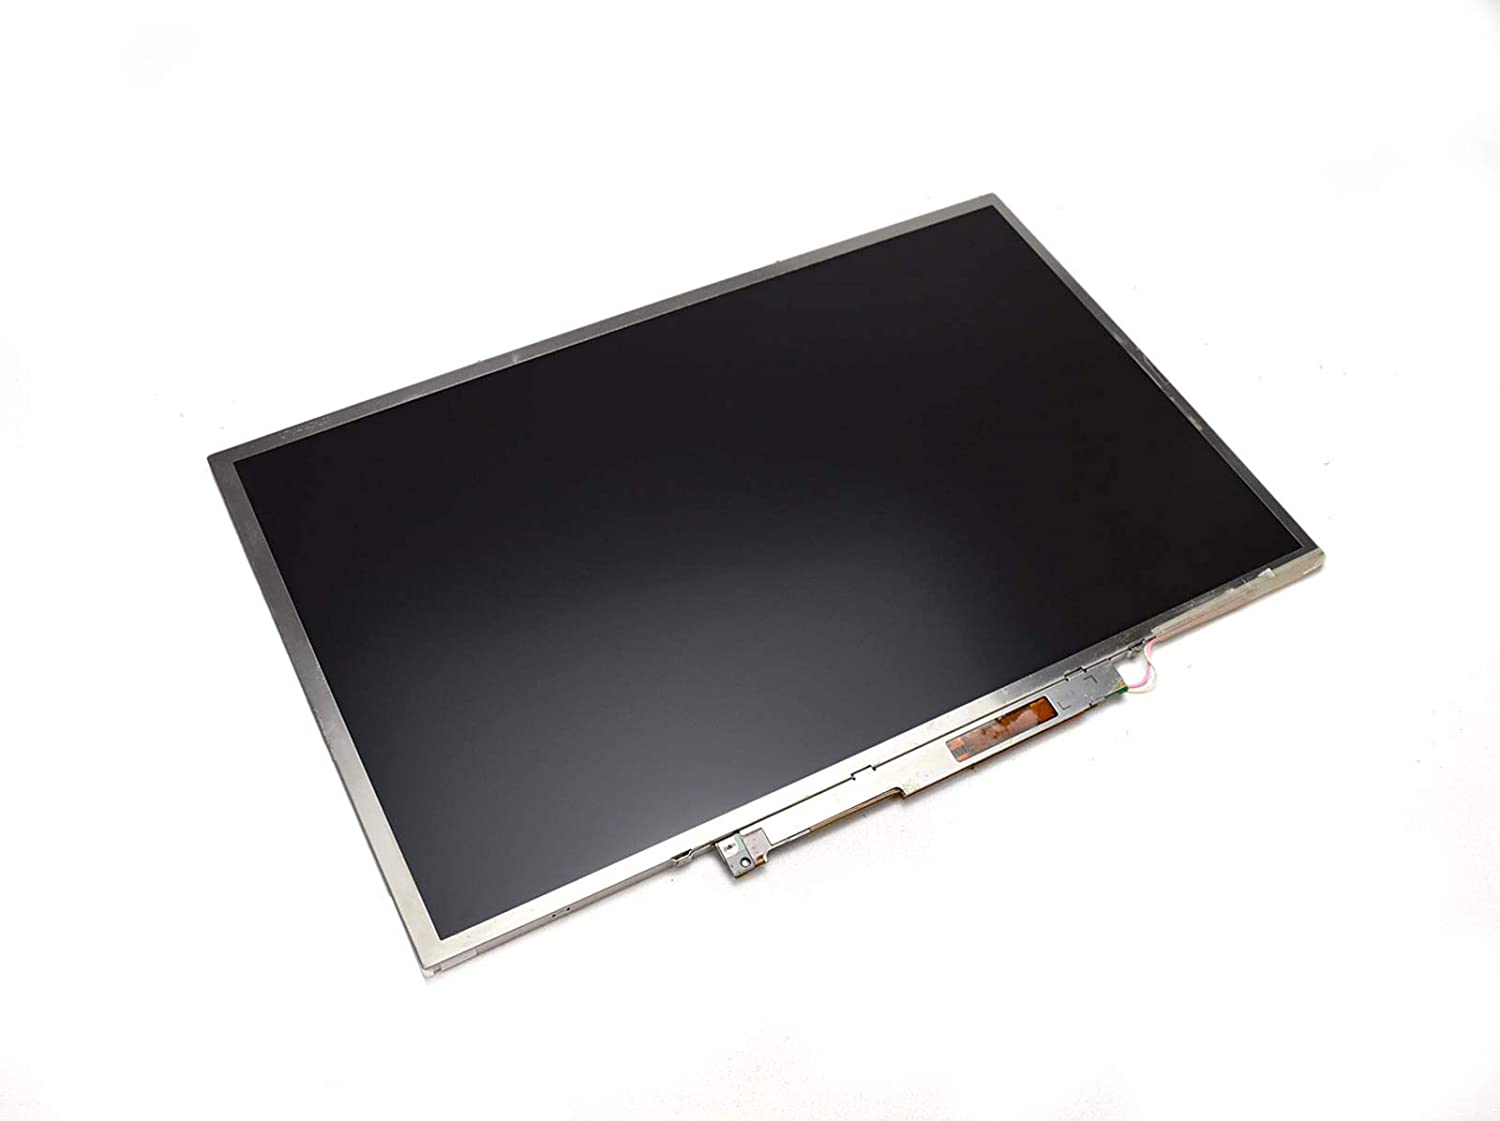 "Aquamoon Trading Compatible Matte 14.1"" WXGA+ CCFL LTN141WD-L01 LCD Screen Display Replacement for Dell Latitude D620 D630 D631"